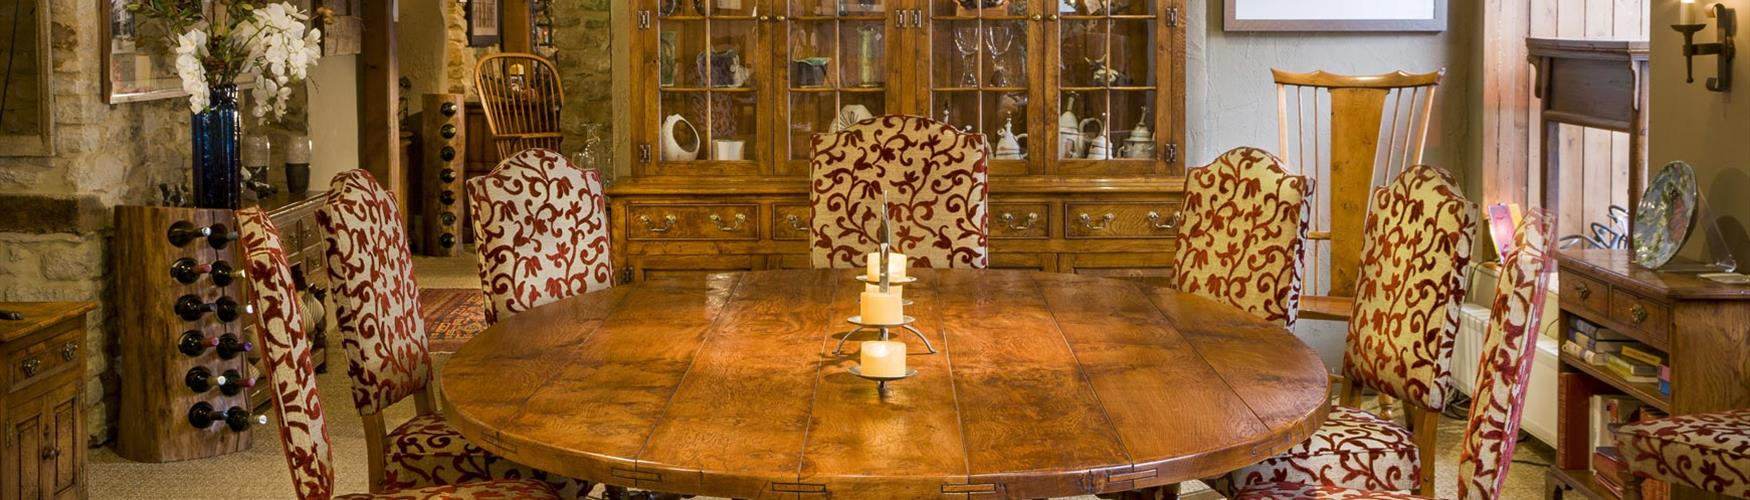 Art and antiques in the Cotswolds - Real Wood Furniture Company dining table